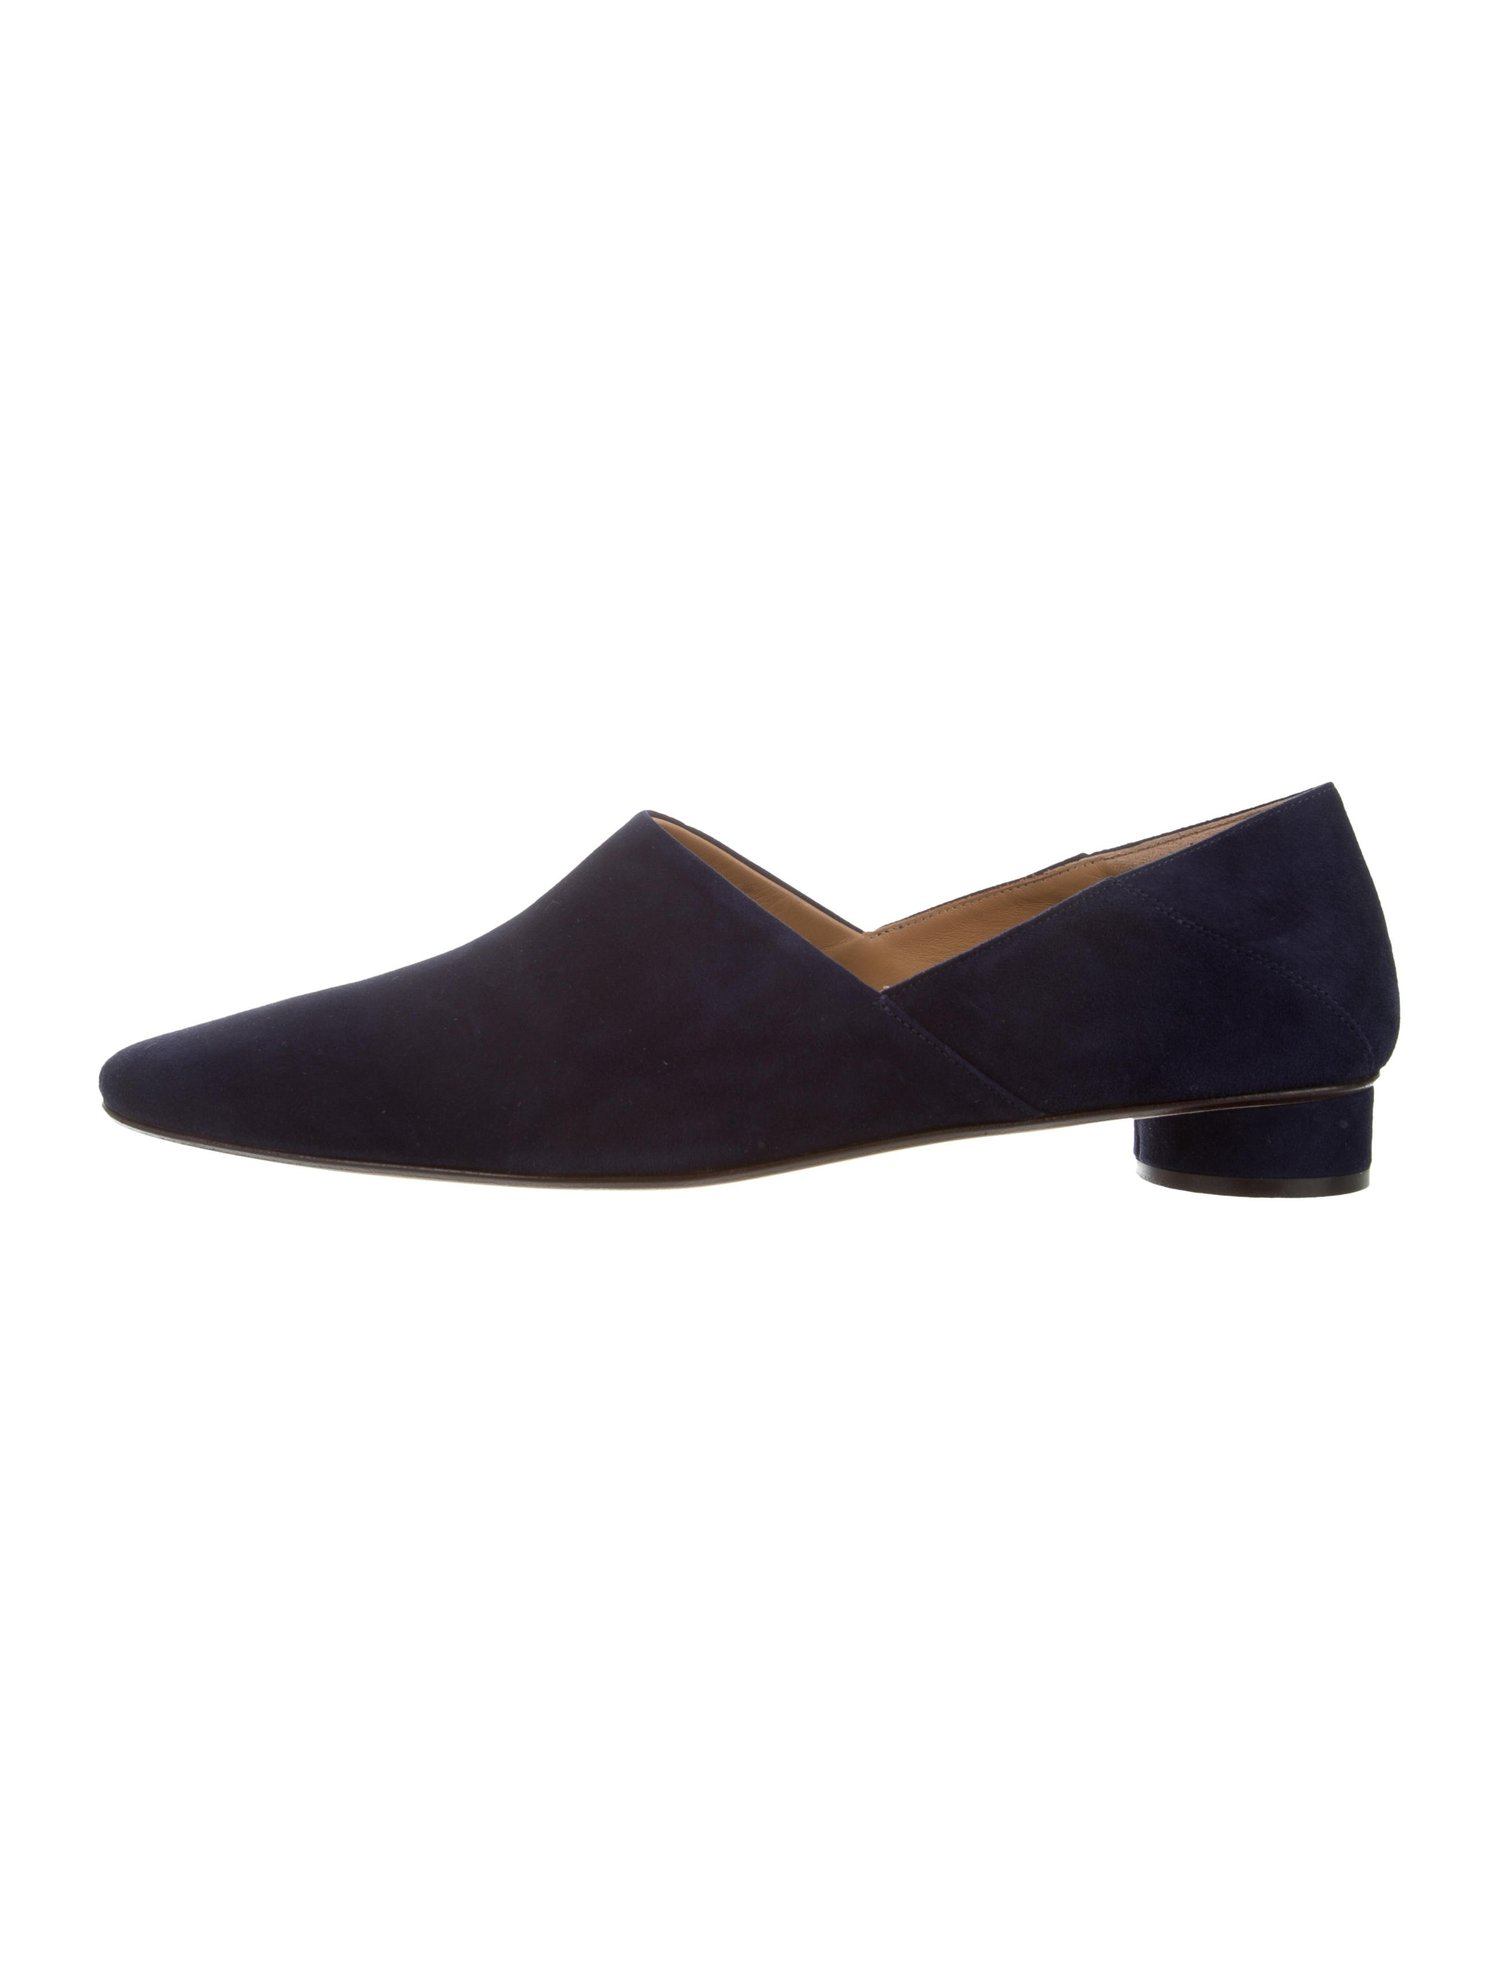 The Row Suede Noelle Loafers